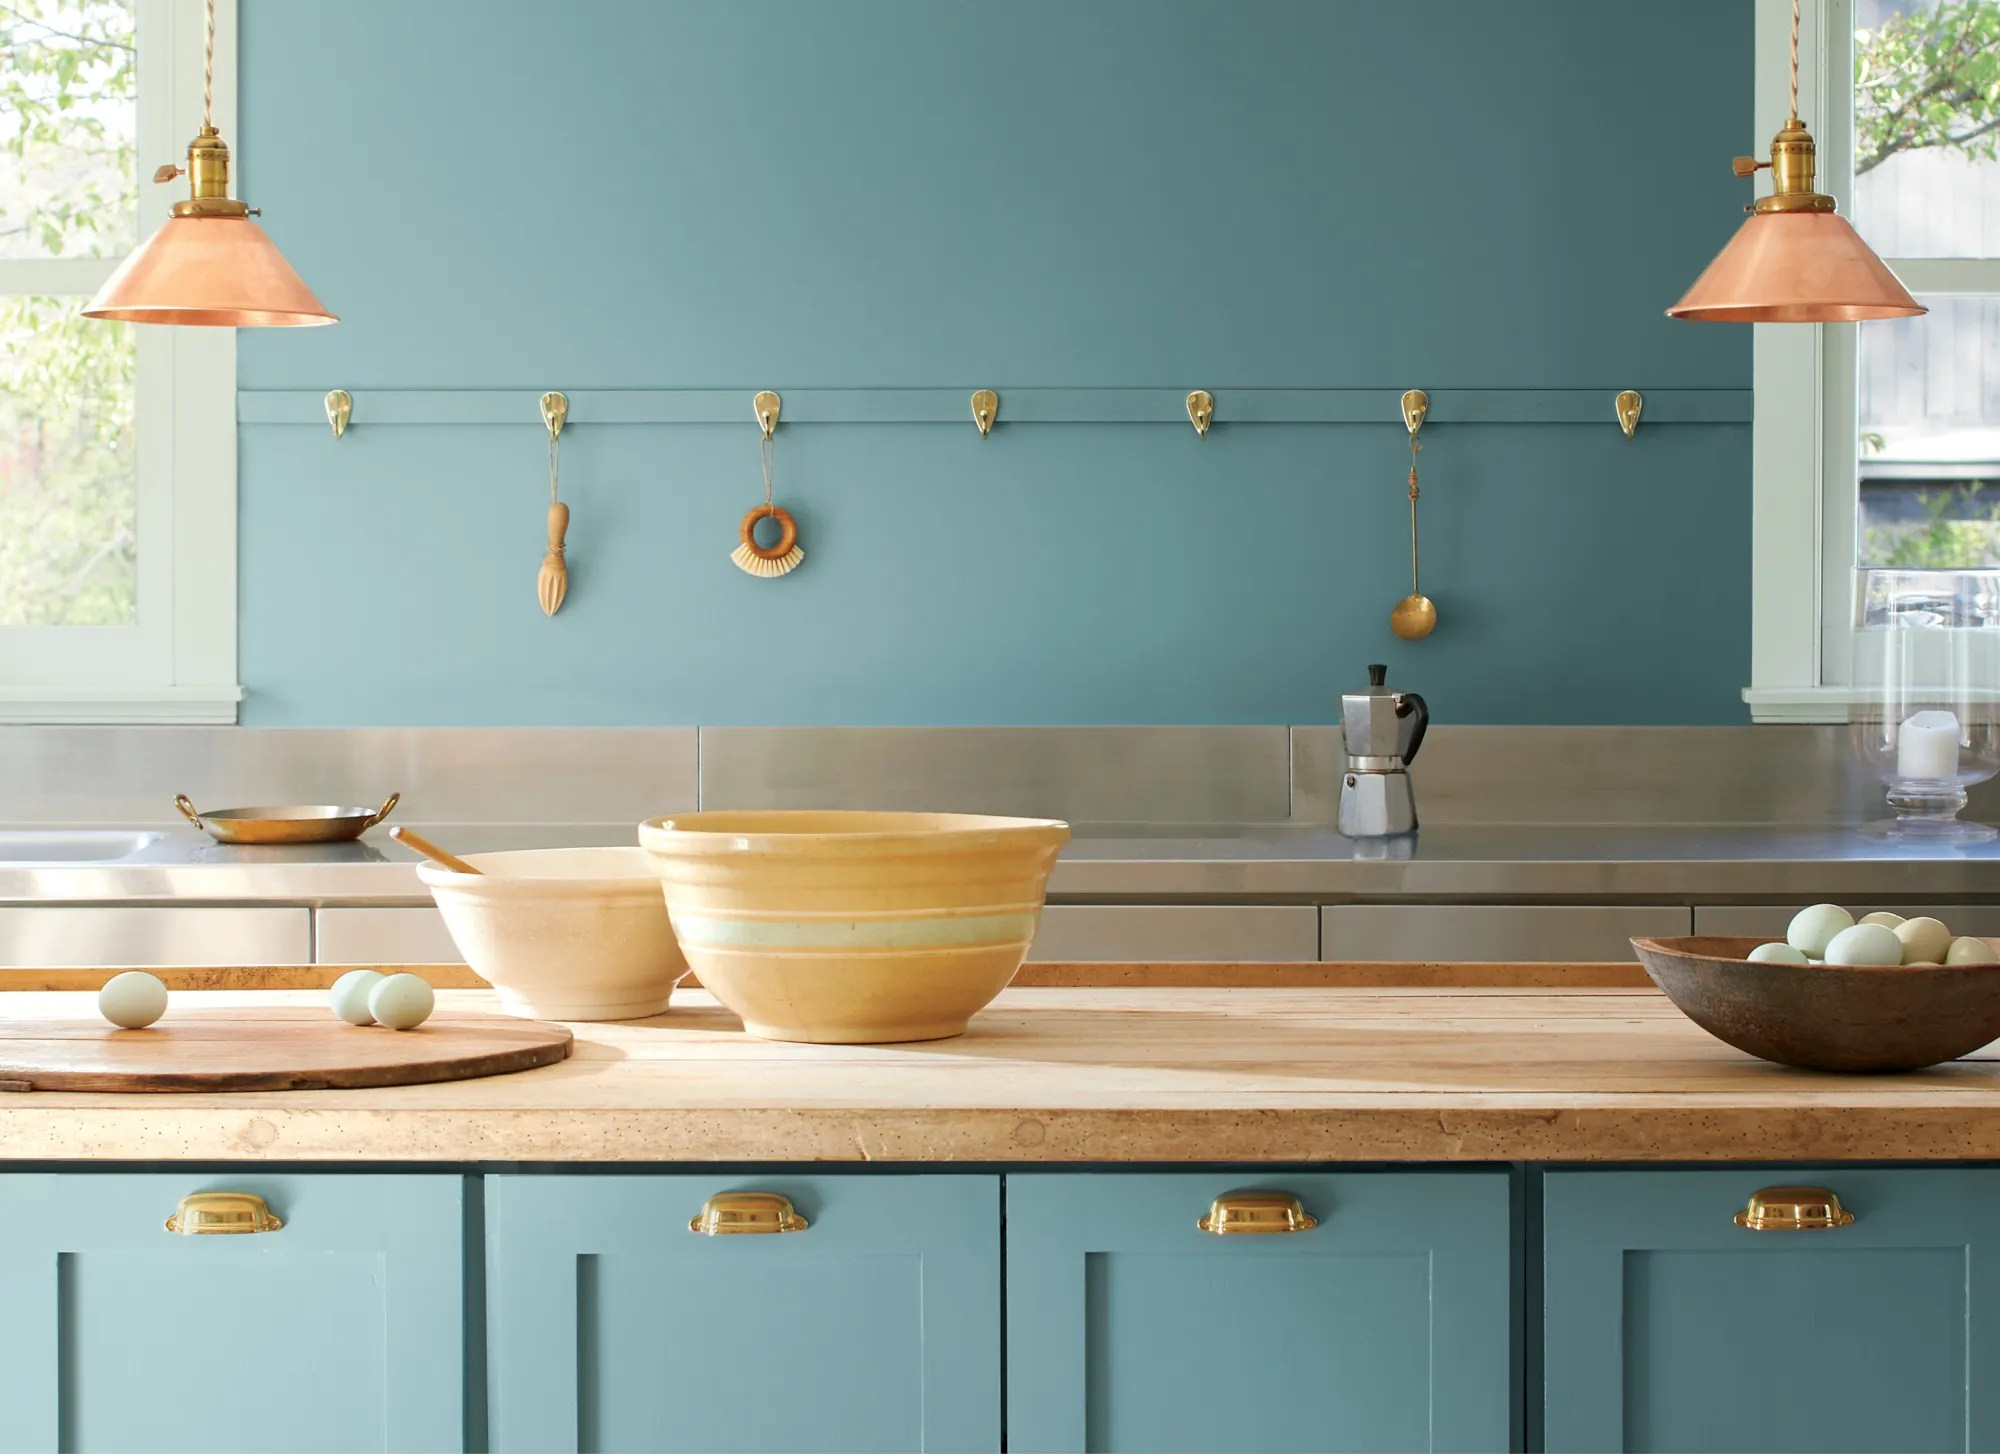 Benjamin Moore S 2021 Color Of The Year Is Aegean Teal Architectural Digest